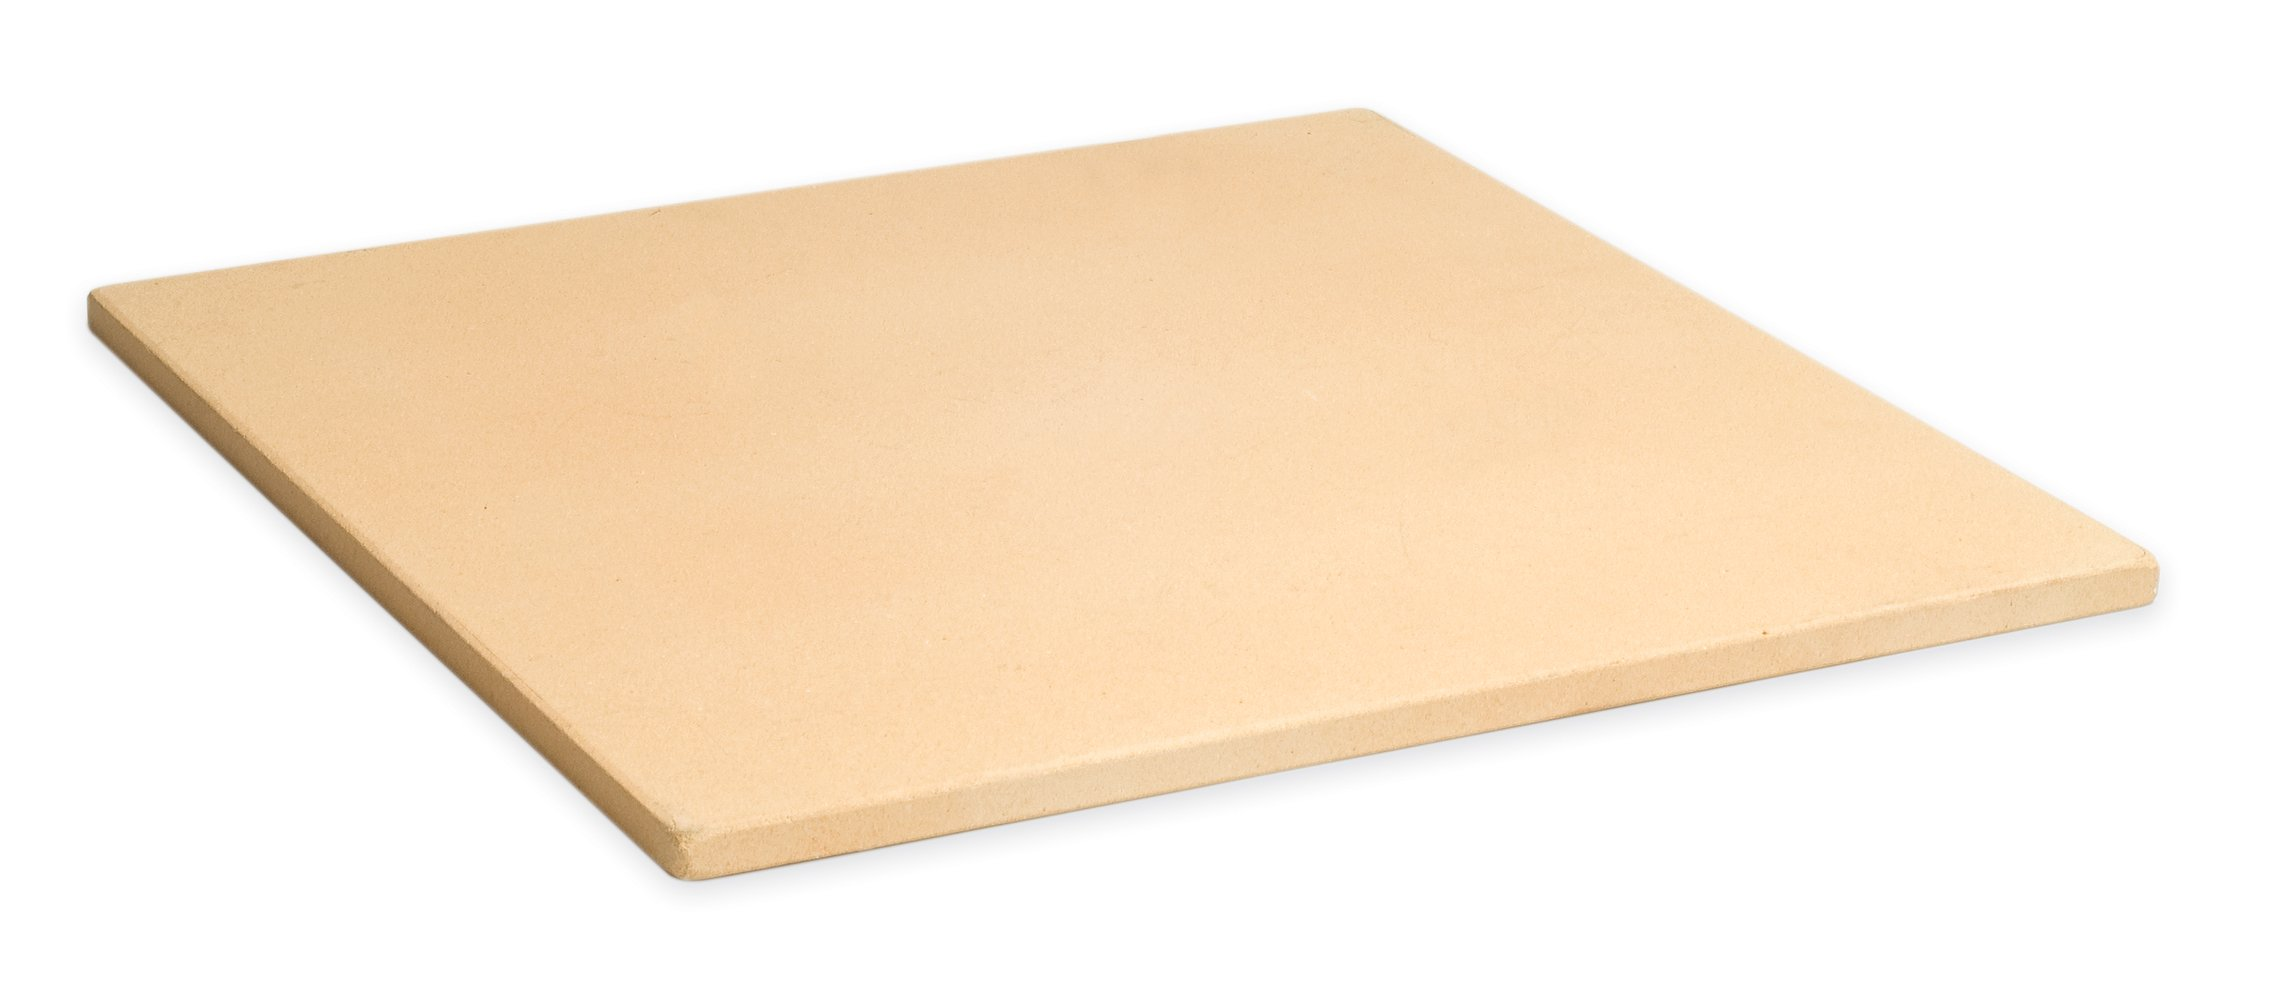 Pizzacraft 15'' Square ThermaBond Baking/Pizza Stone - For Oven or Grill - PC9897 by Pizzacraft